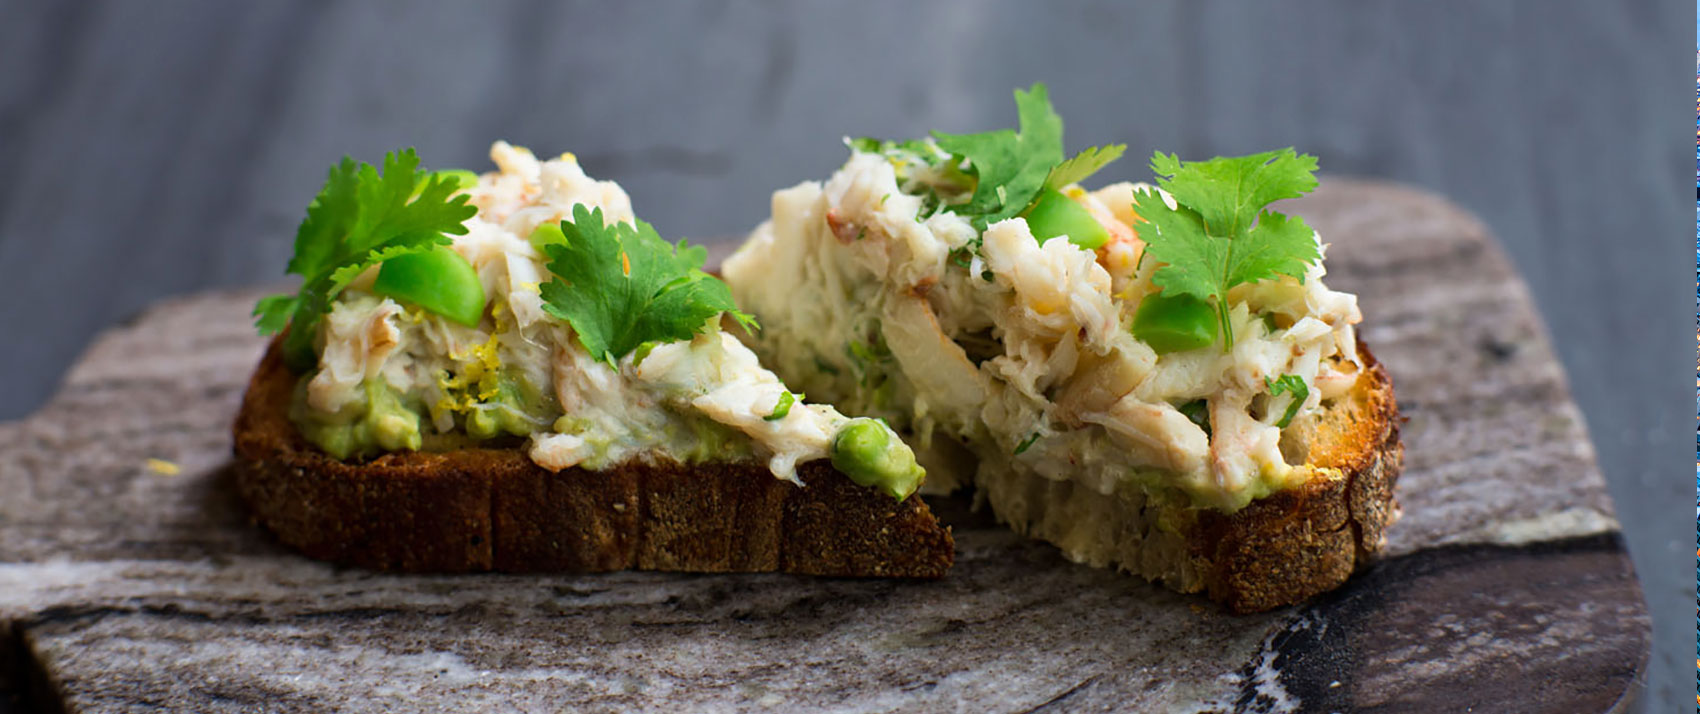 Toast with avocado, herbs, and seafood on top